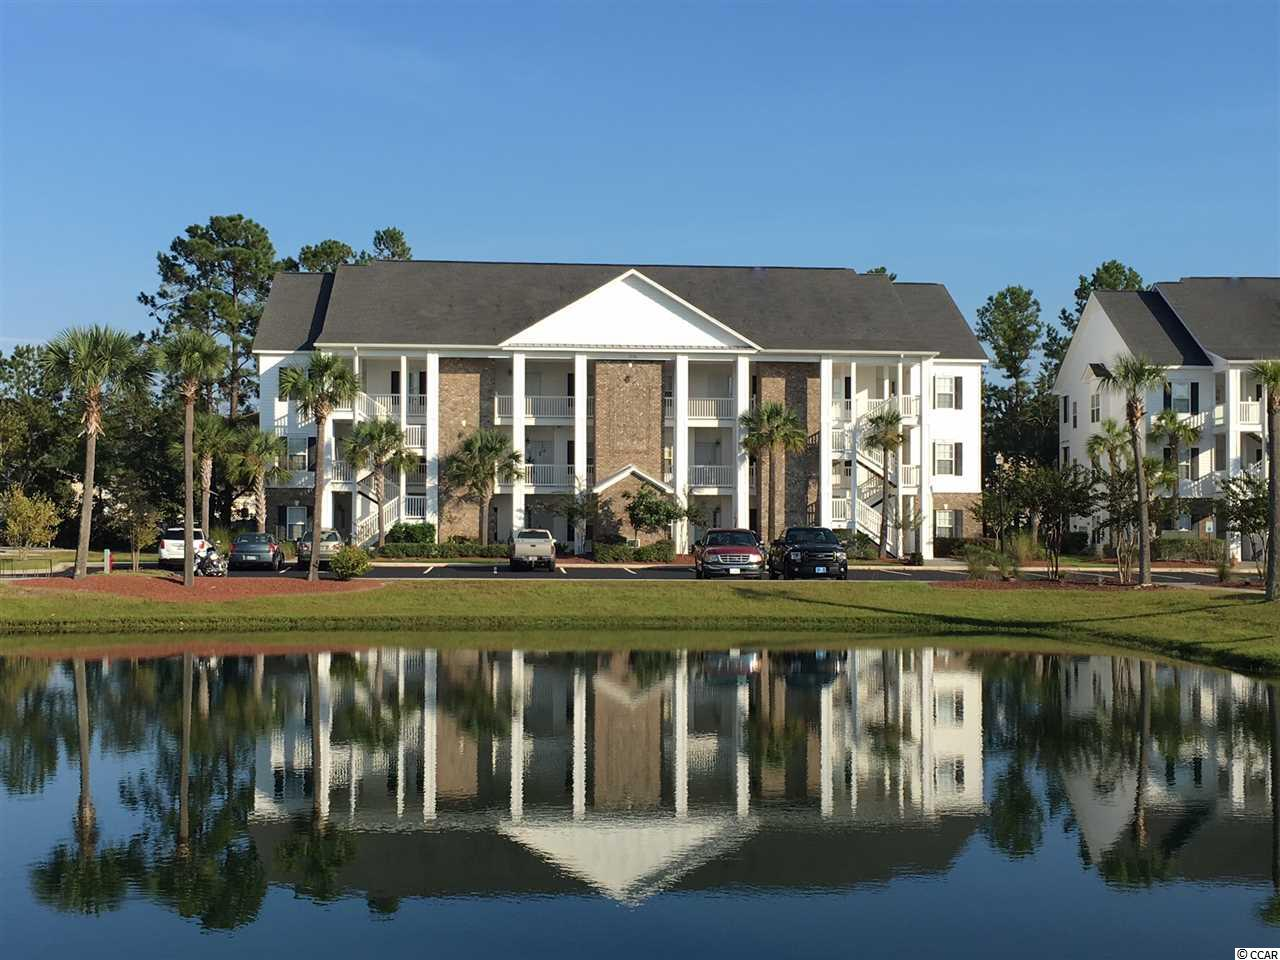 NOW MOVE IN READY!! Newly constructed Villas that are two and three bedrooms with two full baths. Very spacious units with 9 foot ceilings, (vaulted ceilings on Third Floor Only) soft close cabinets through out, energy efficient, high impact windows, walk in closets in the master, granite countertops, screened in porches and outside storage units. This community will be totally gated once the last building is completed, low HOA fees and only 2 miles to the beach. This property is so centrally located on the South end to everything. This is a perfect primary home, second home or beach retreat. The units are all on one level and the care free living provide by this community gives you the full essence of coastal living.  HOA Fee includes insurance.